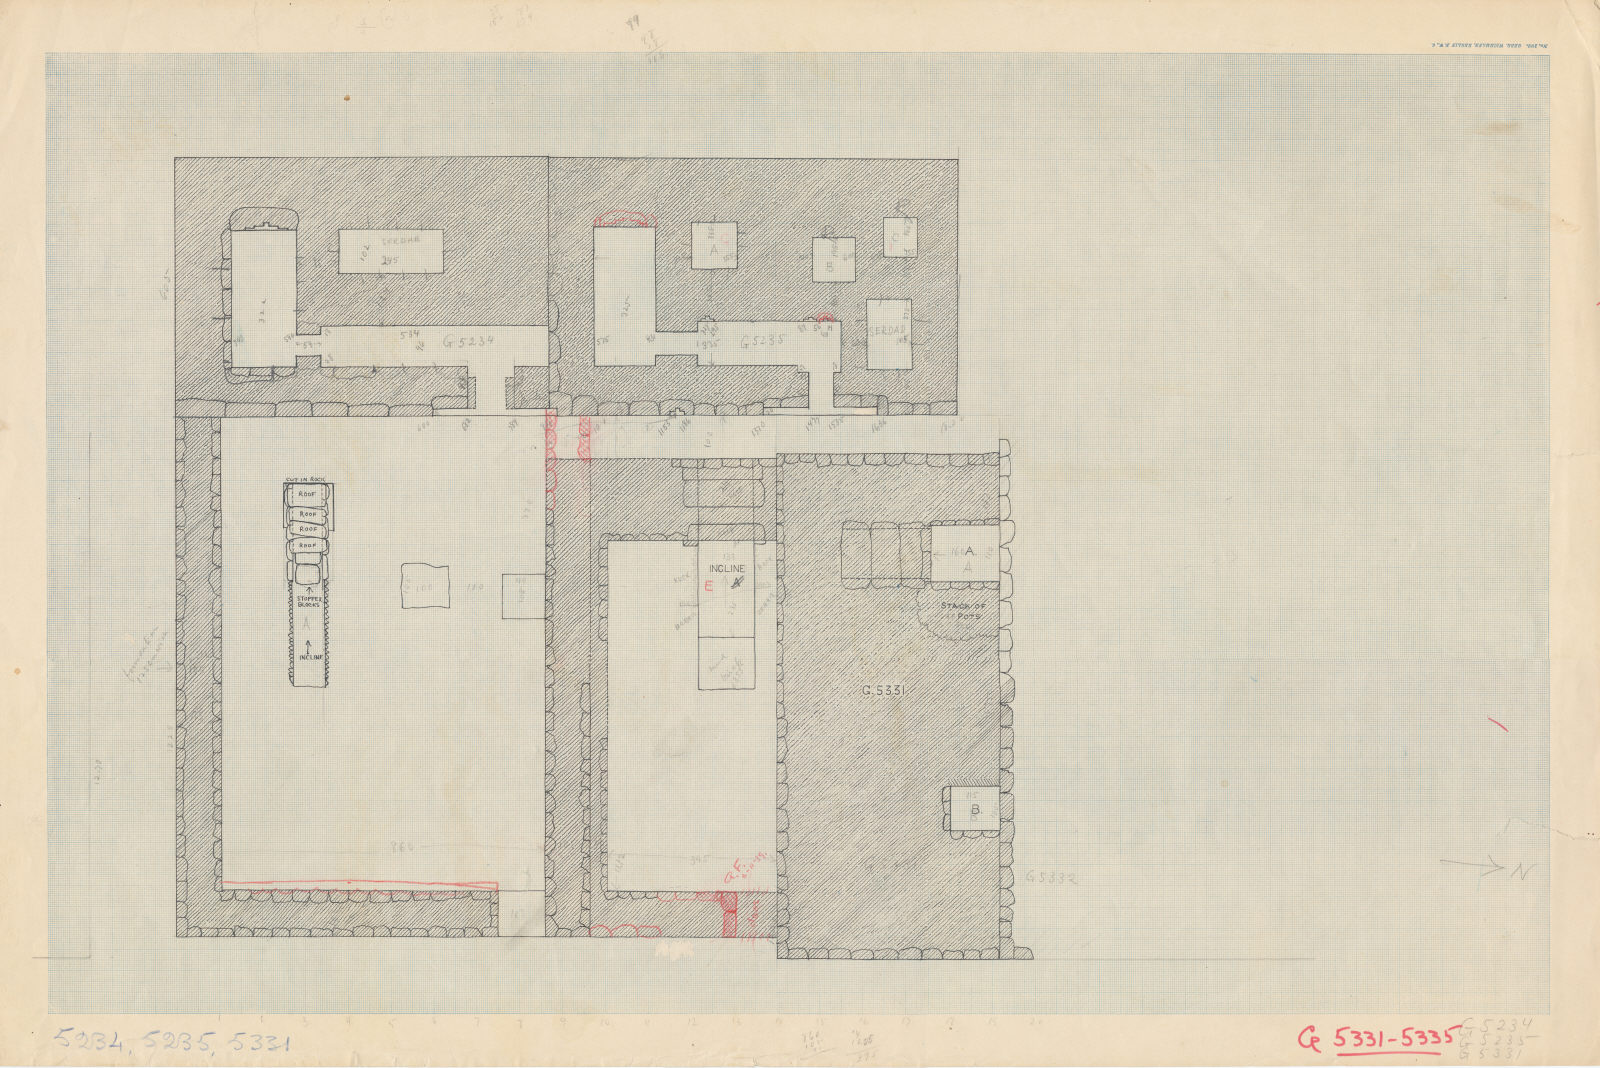 Maps and plans: Plan of G 5234, G 5235, G 5331